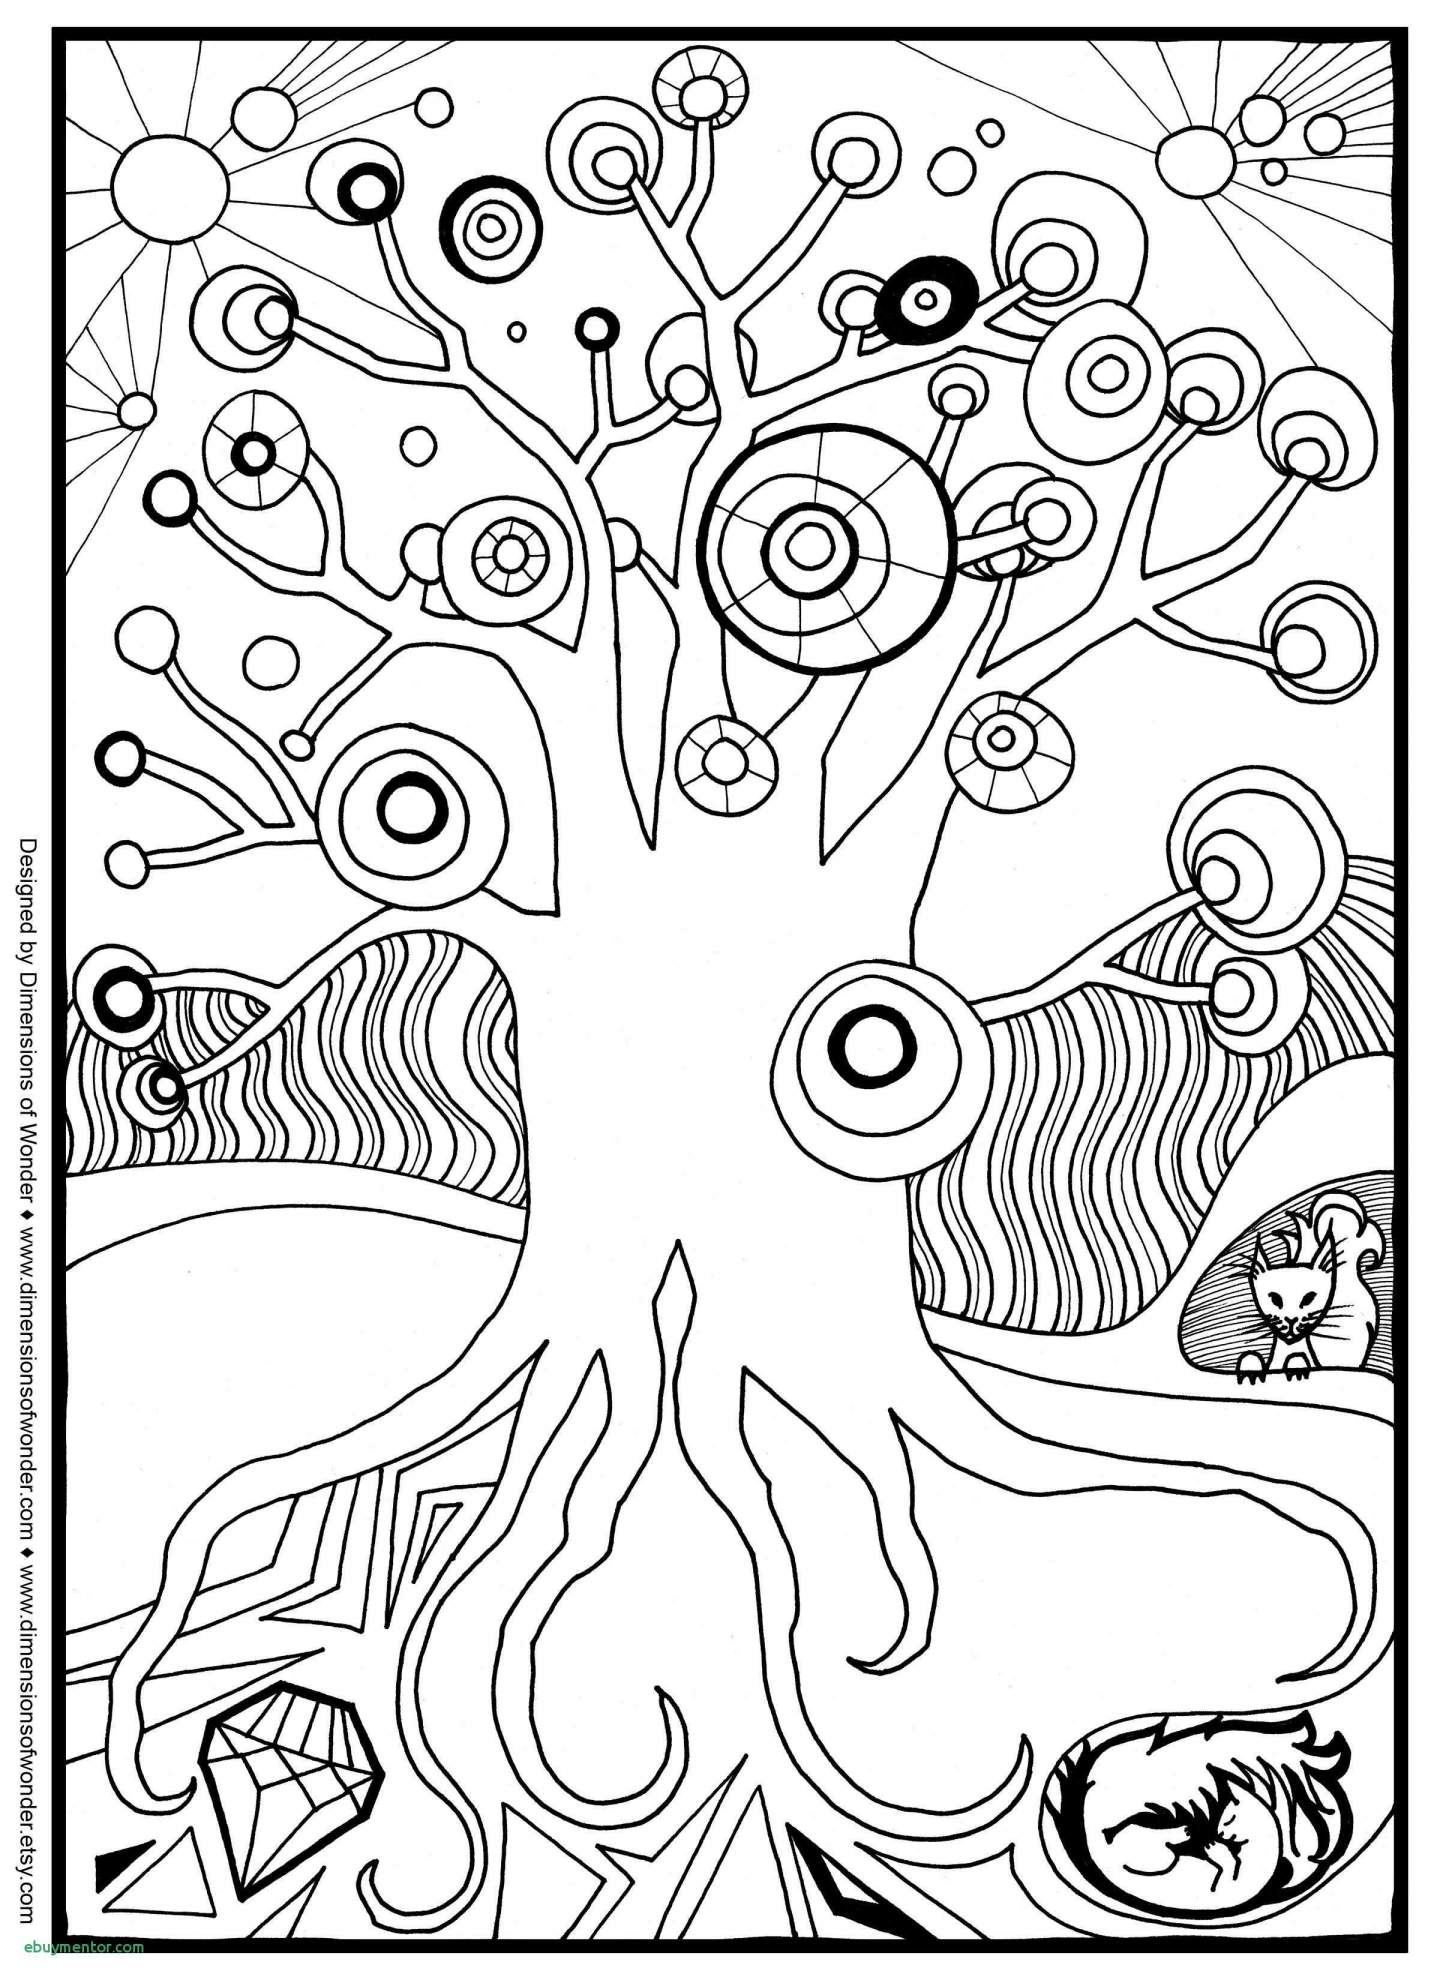 Christmas Coloring Pages For Adults Printable With Angels